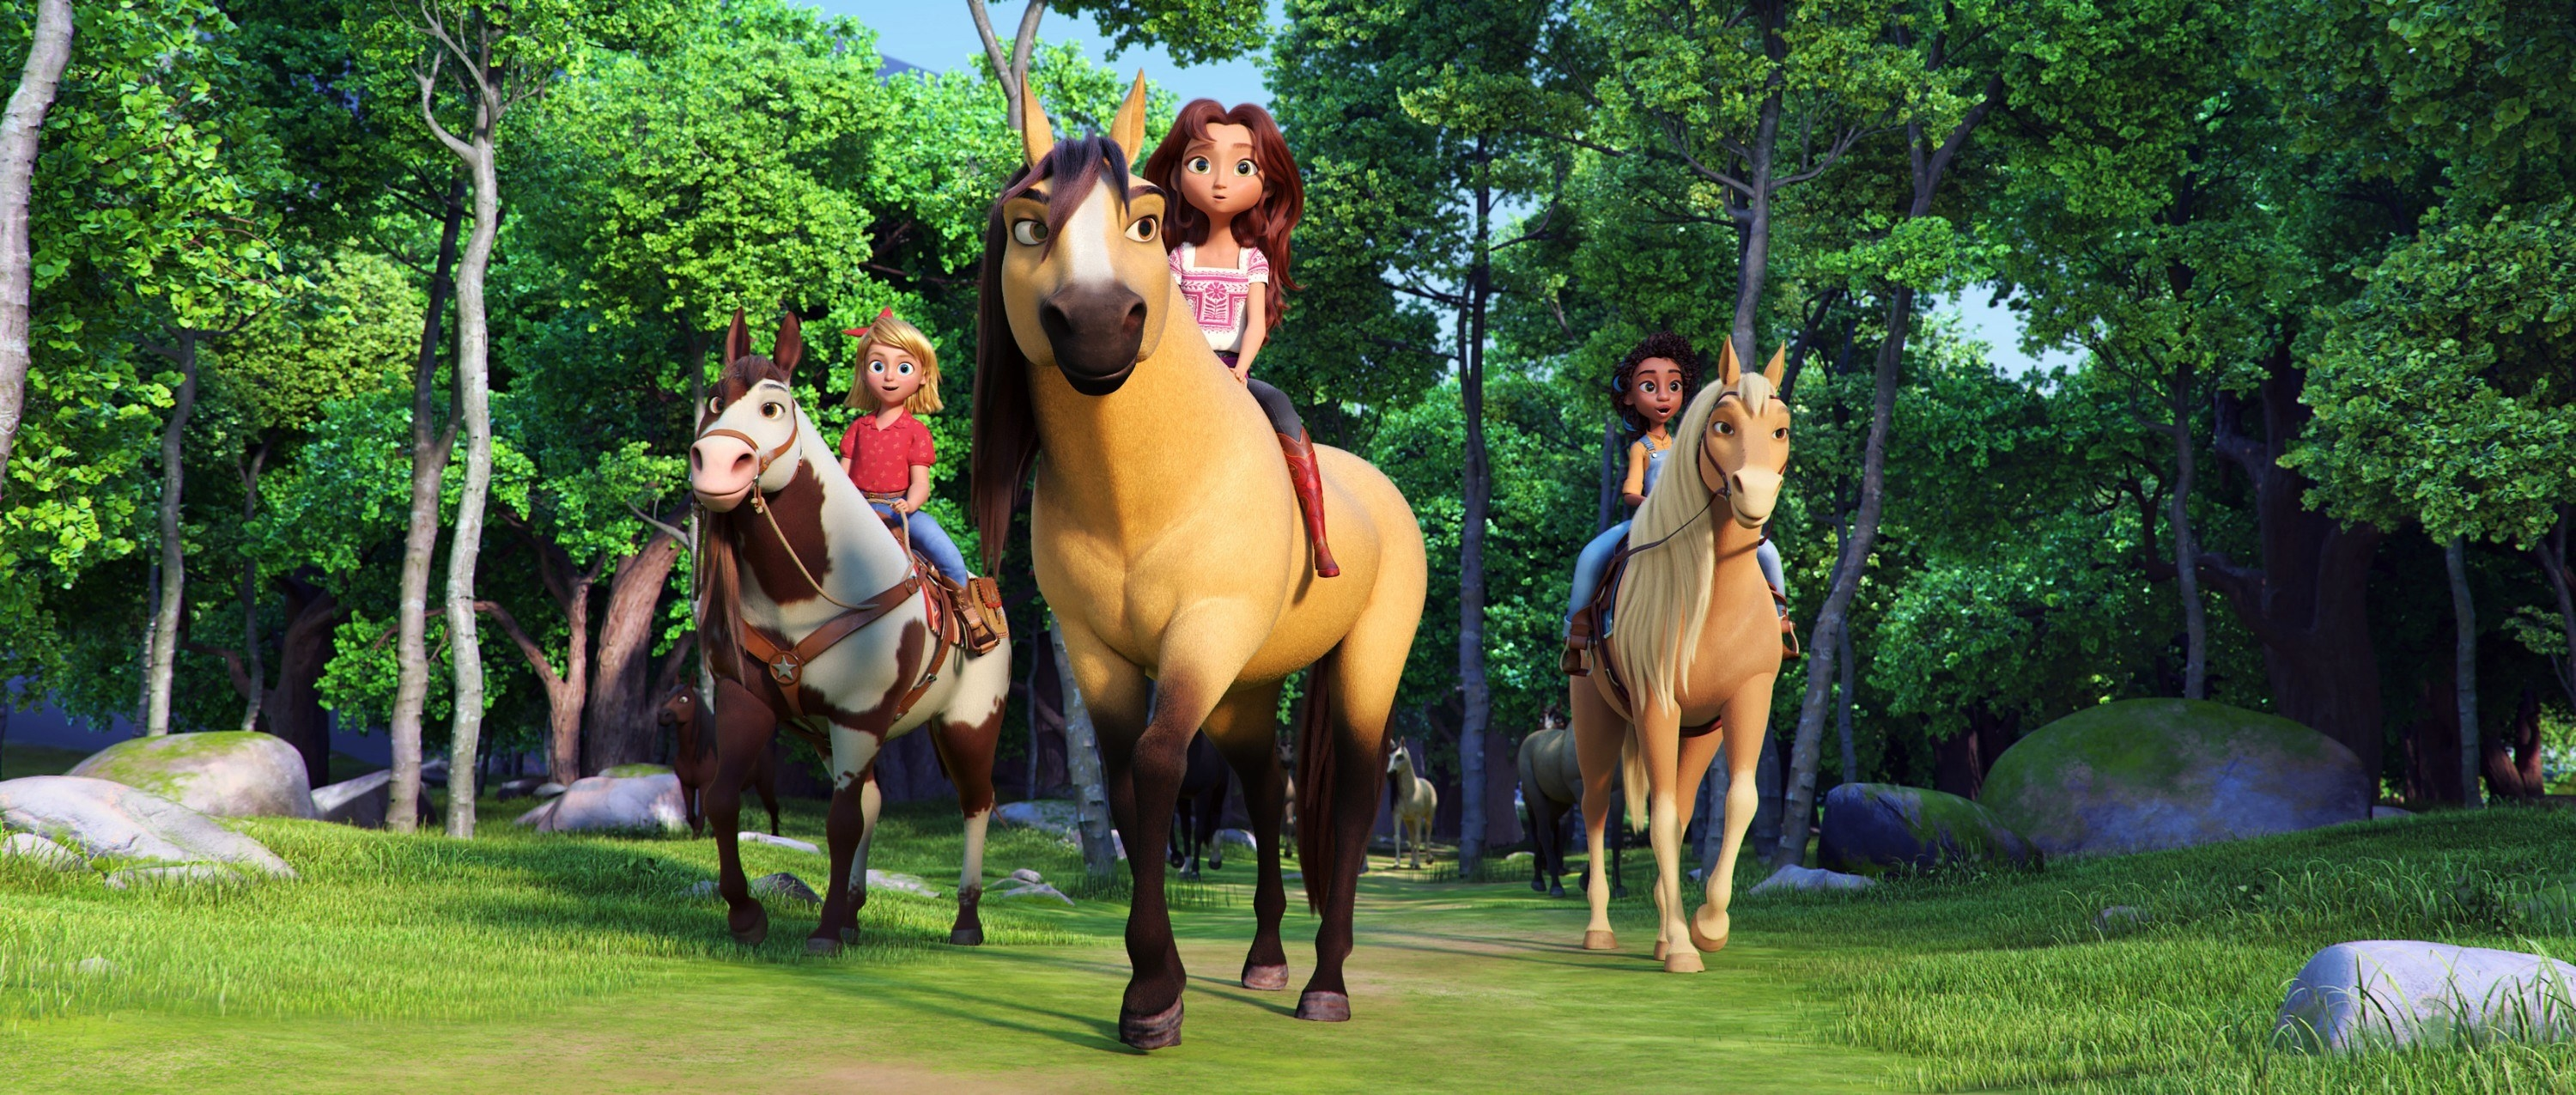 from left is an animation of mckenna grace, Isabela Merced, and Marsai Martin riding horses in the woods